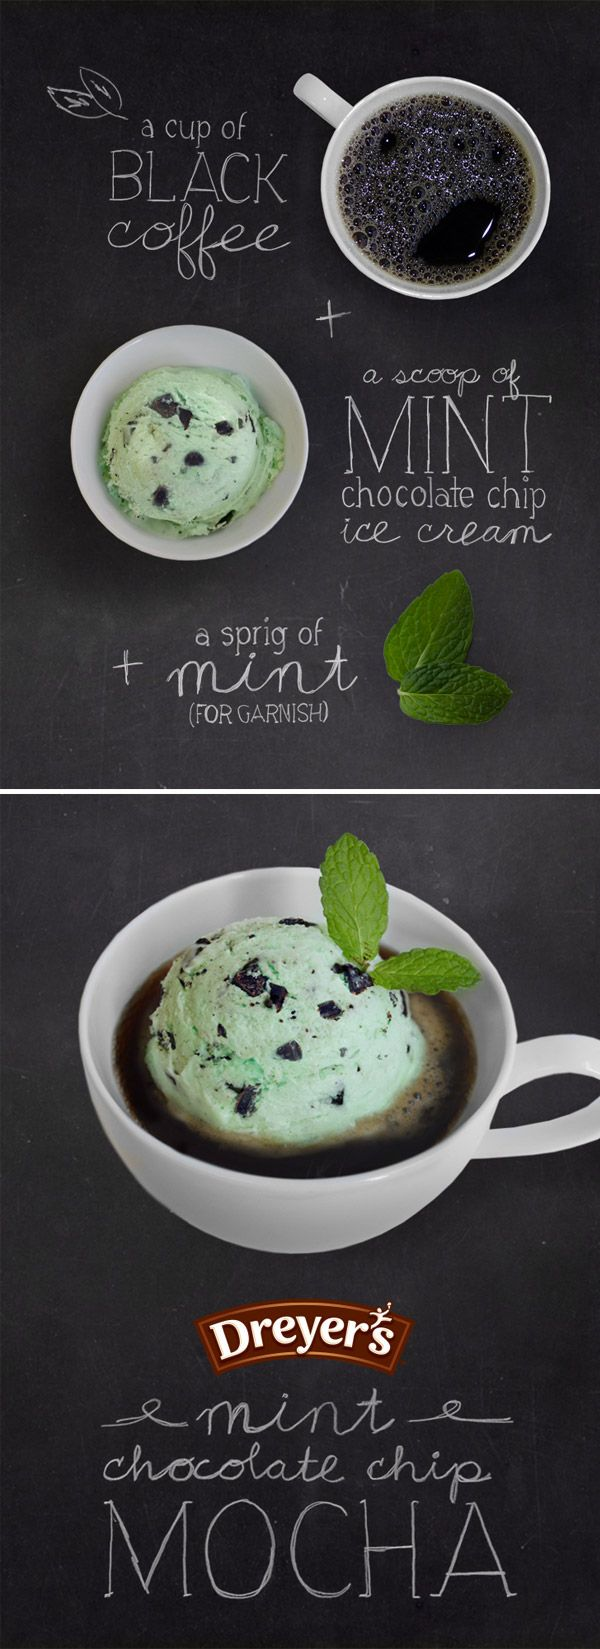 Mint Chocolate Chip Mocha: There's always room for (ice) cream in your coffee. Just add Dreyer's Mint Chocolate Chip ice cream in your cup of joe for a sweet pick-me-up any time of the day. You can even add a sprig of mint for added flavor while you sip and savor this simple frozen drink!